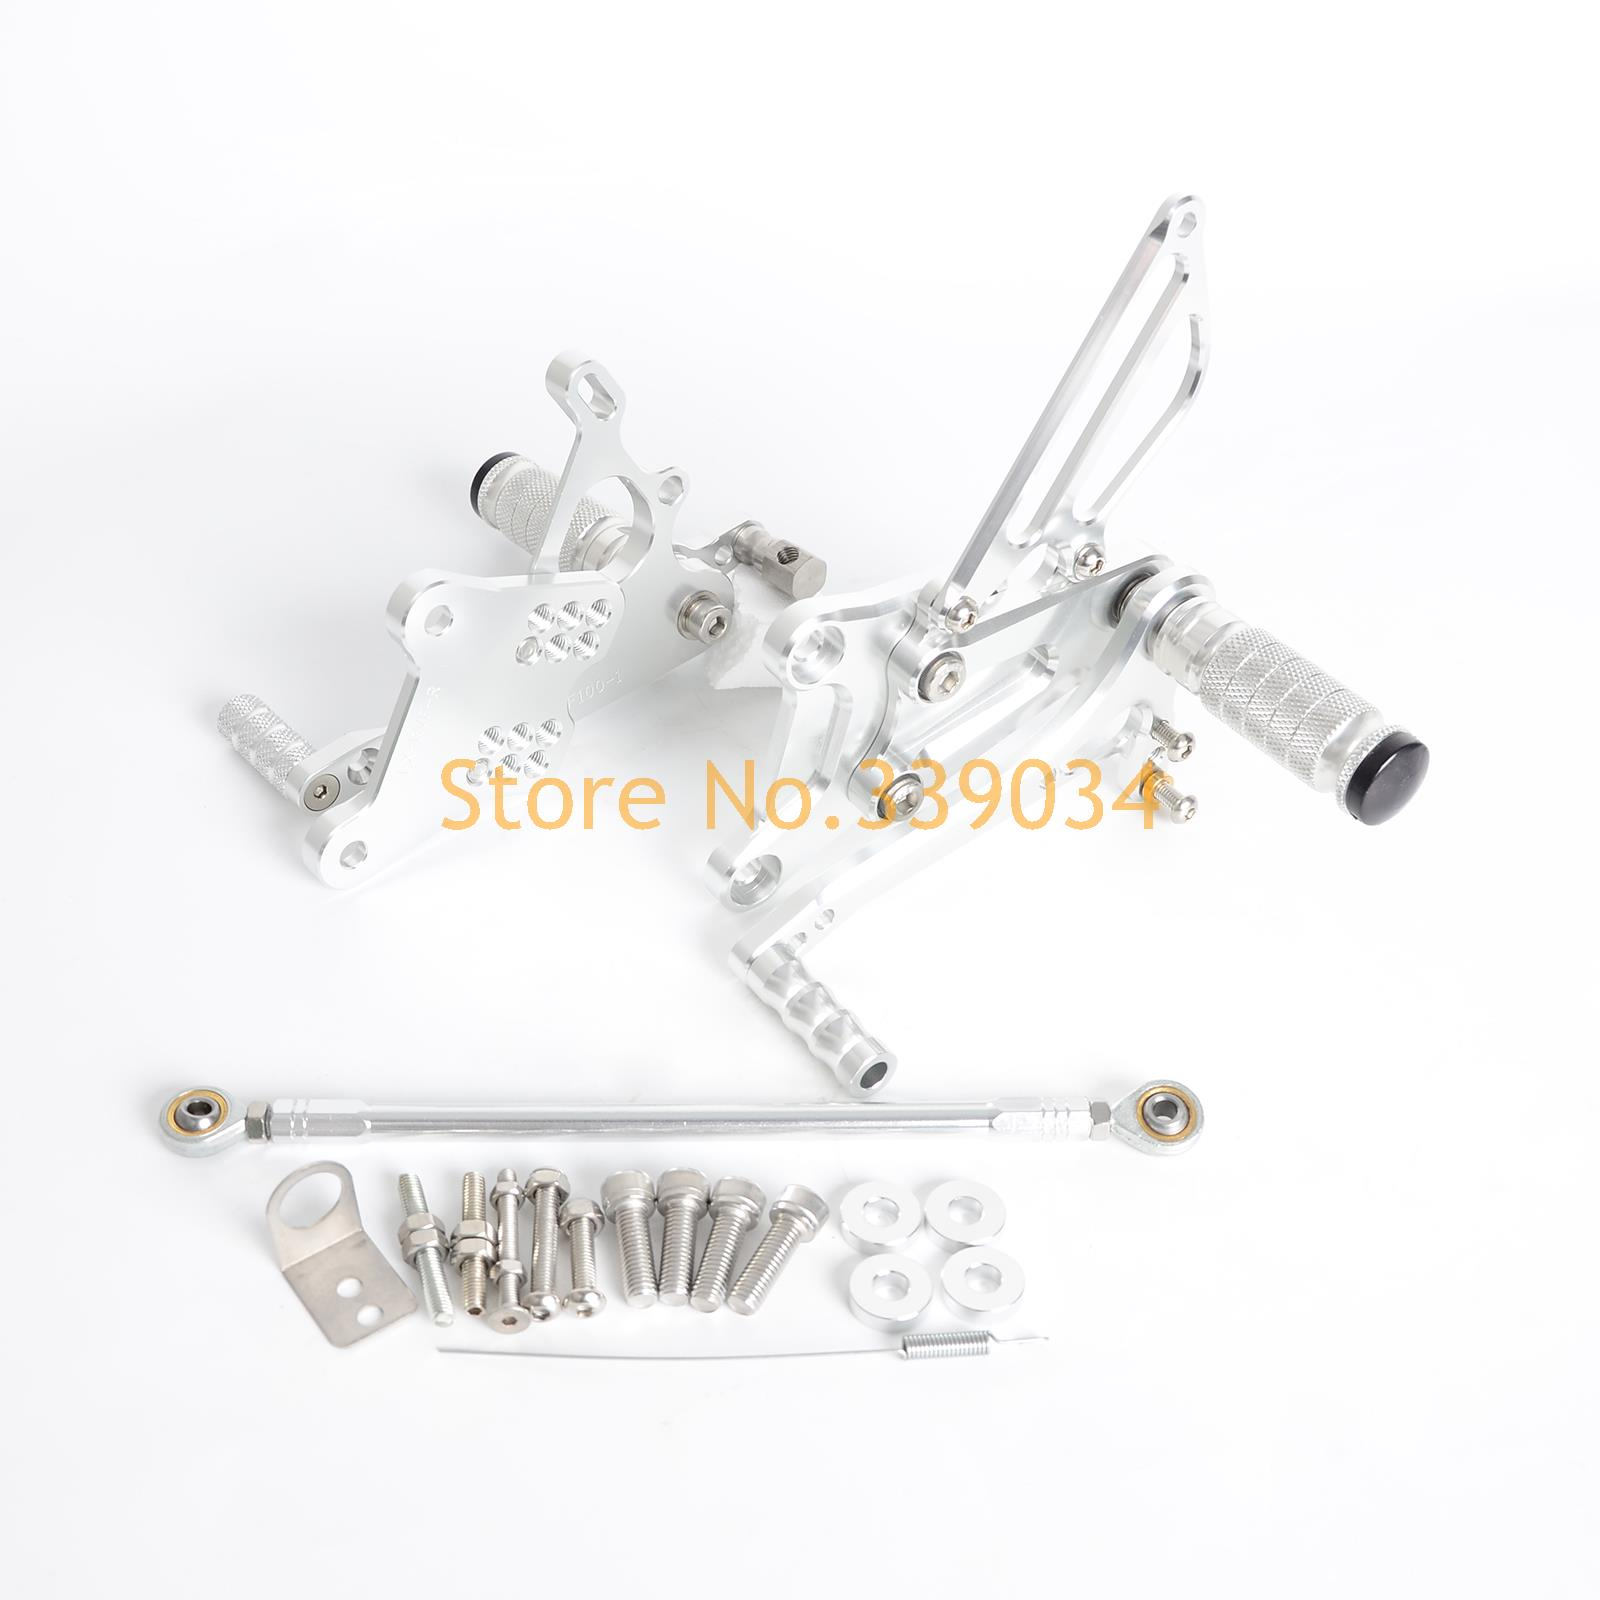 Silver CNC Billet Racing Adjustable Foot Pegs Rear Sets For Honda VFR400 NC30 RVF400 NC35-in Foot Rests from Automobiles & Motorcycles    1